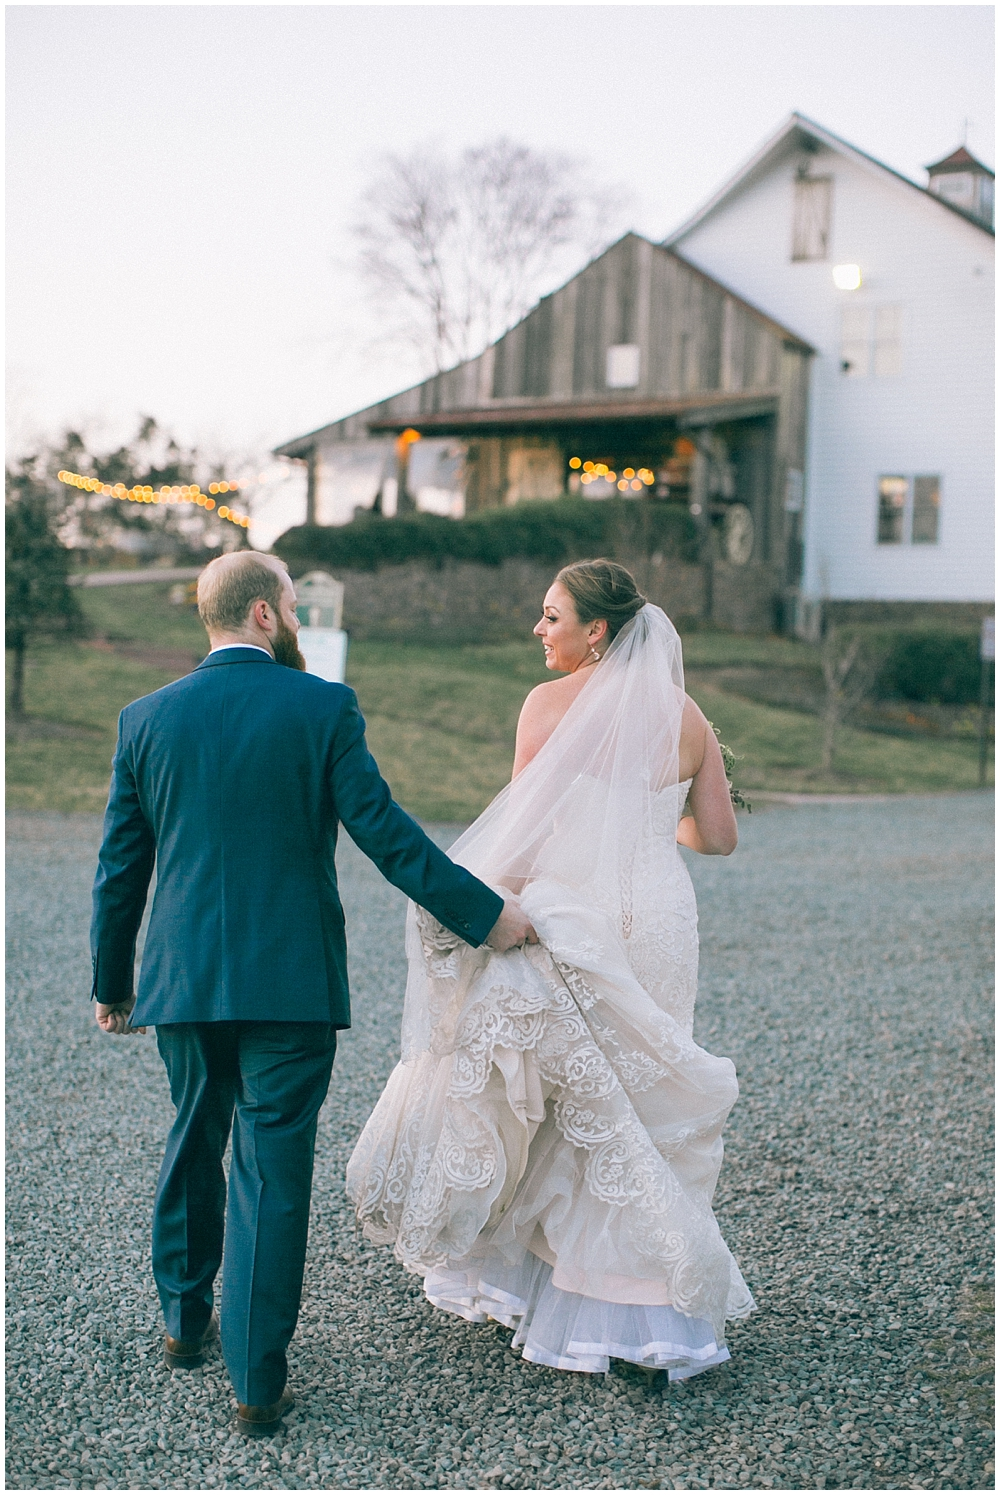 PattengalePhotography_StLouis_Wedding_Photographer_Boho_Hipster_Urban_Style_StCharles_Missouri_BullRunWinery_Charlottesville_Ashley&Sawyer_0120.jpg